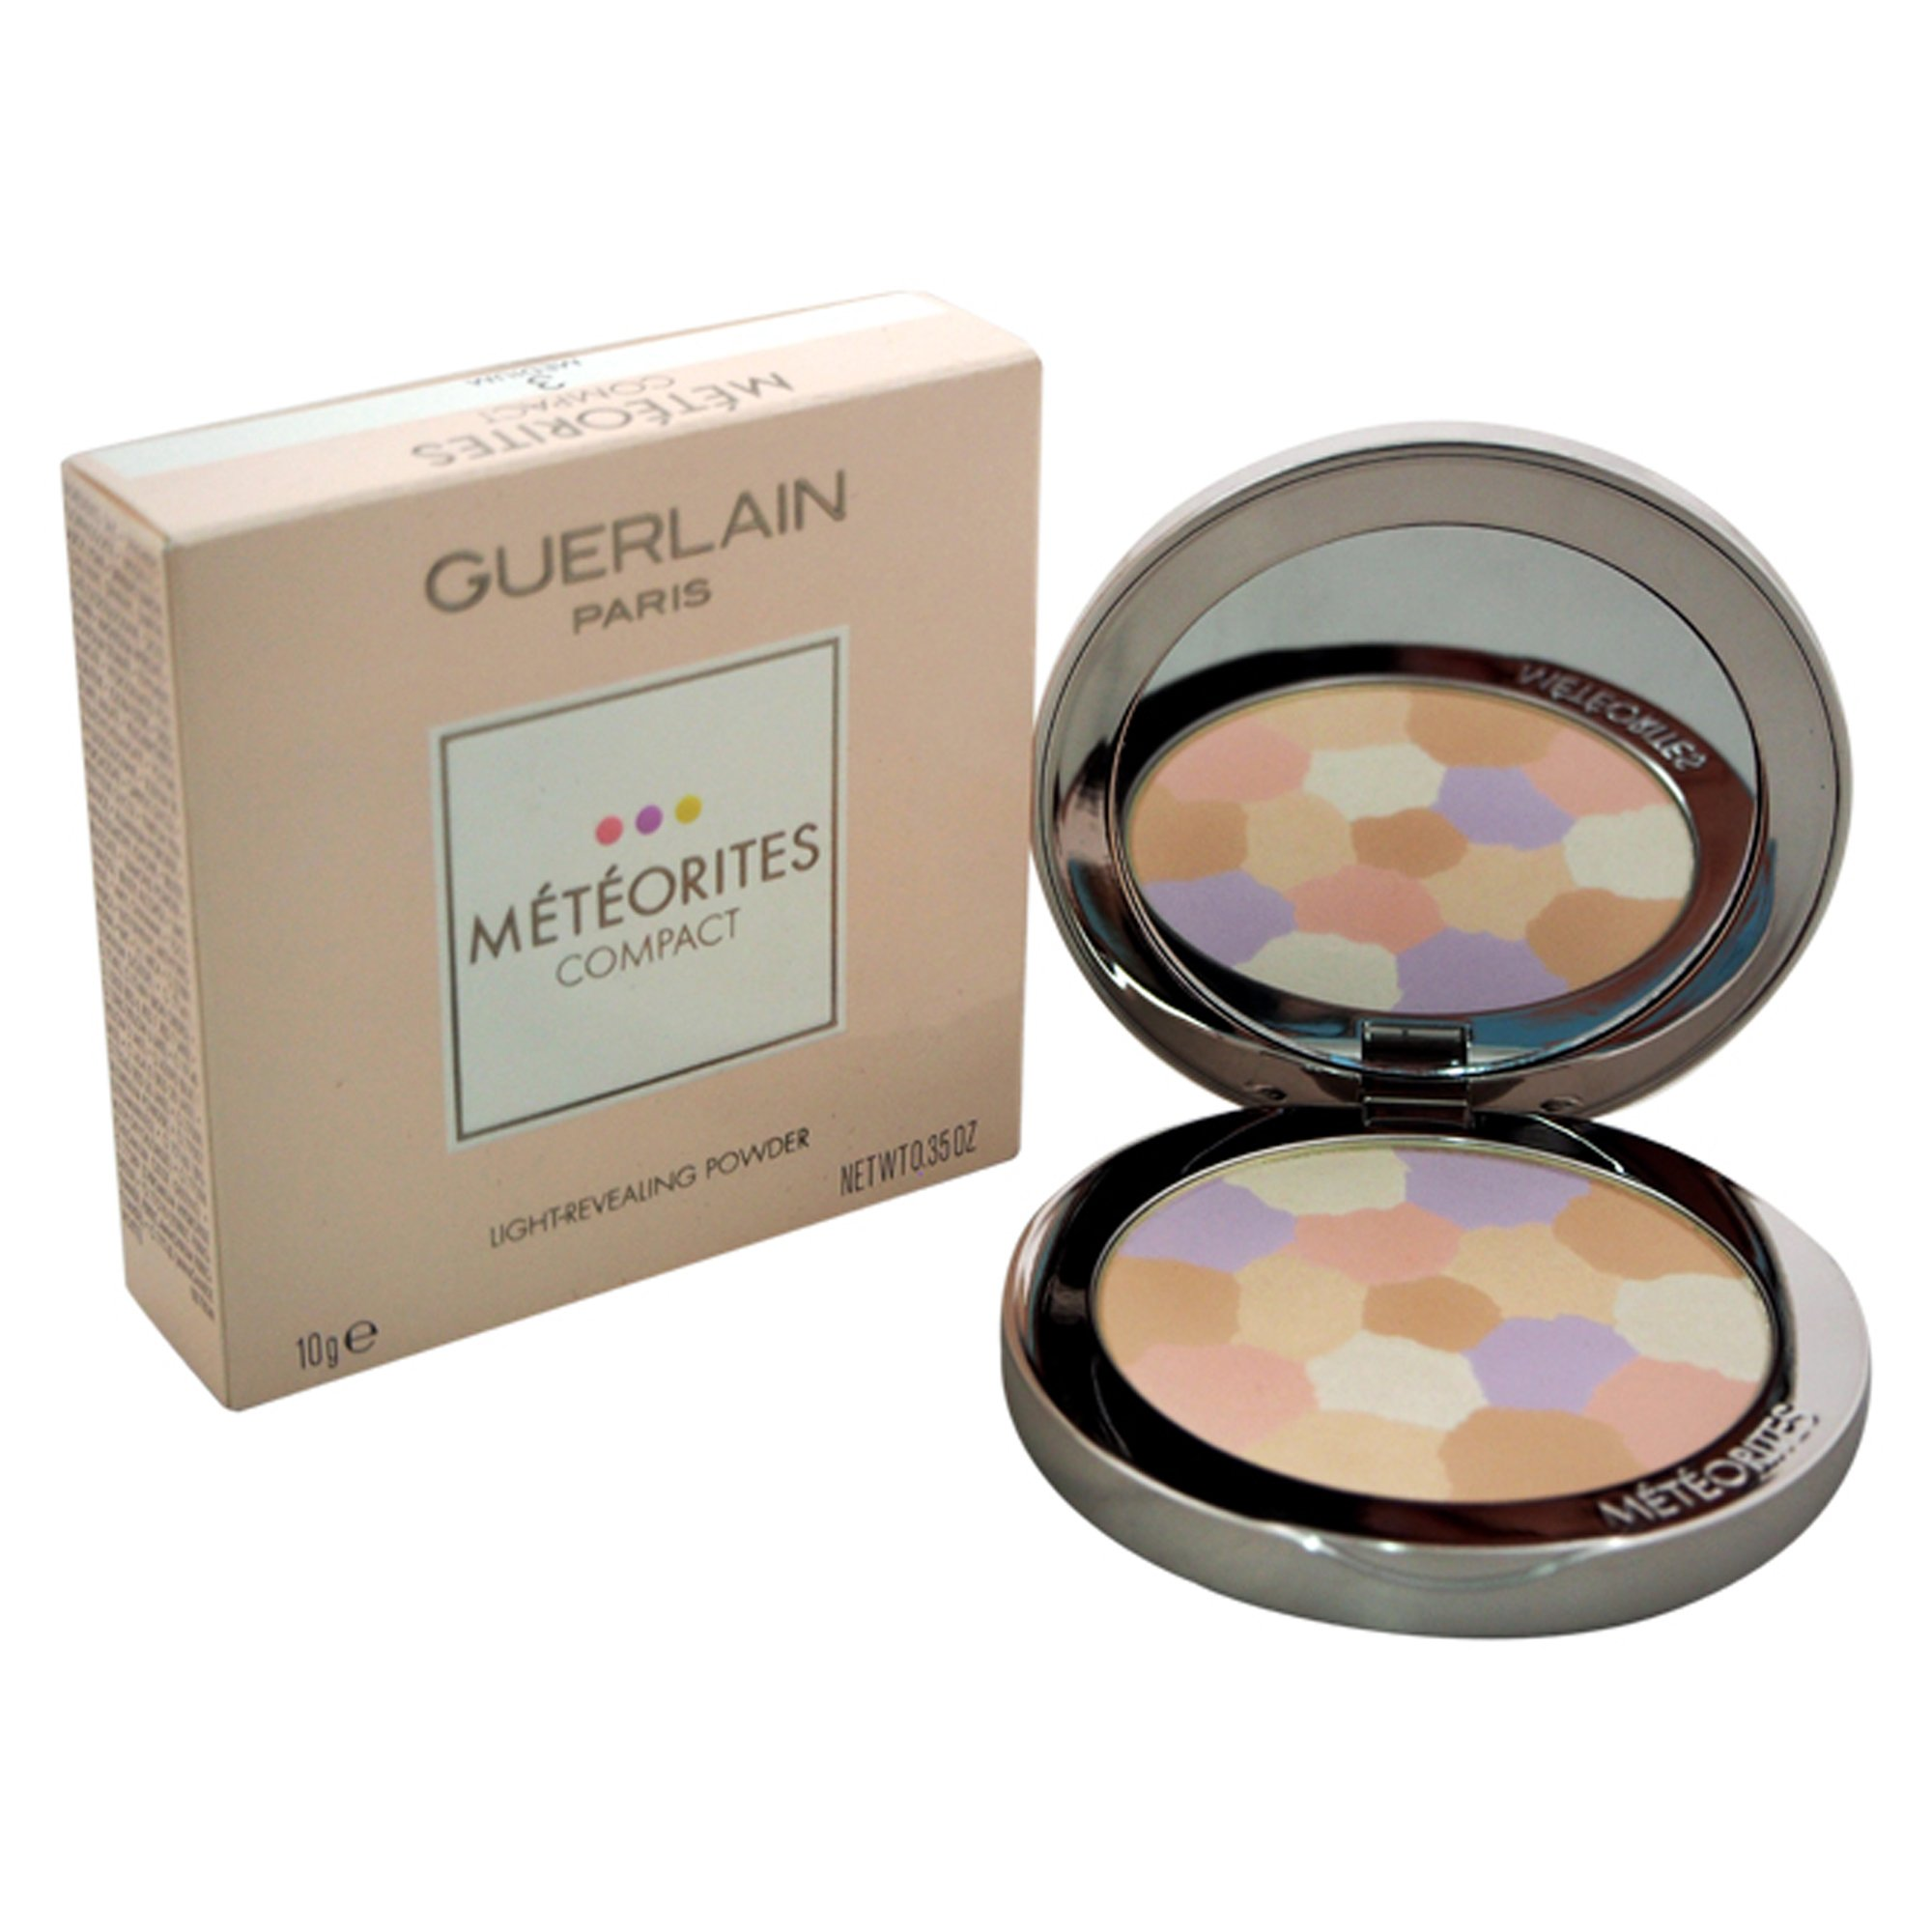 Guerlain Meteorites Compact Light Revealing Powder for Women, 3 Medium, 0.35 Ounce